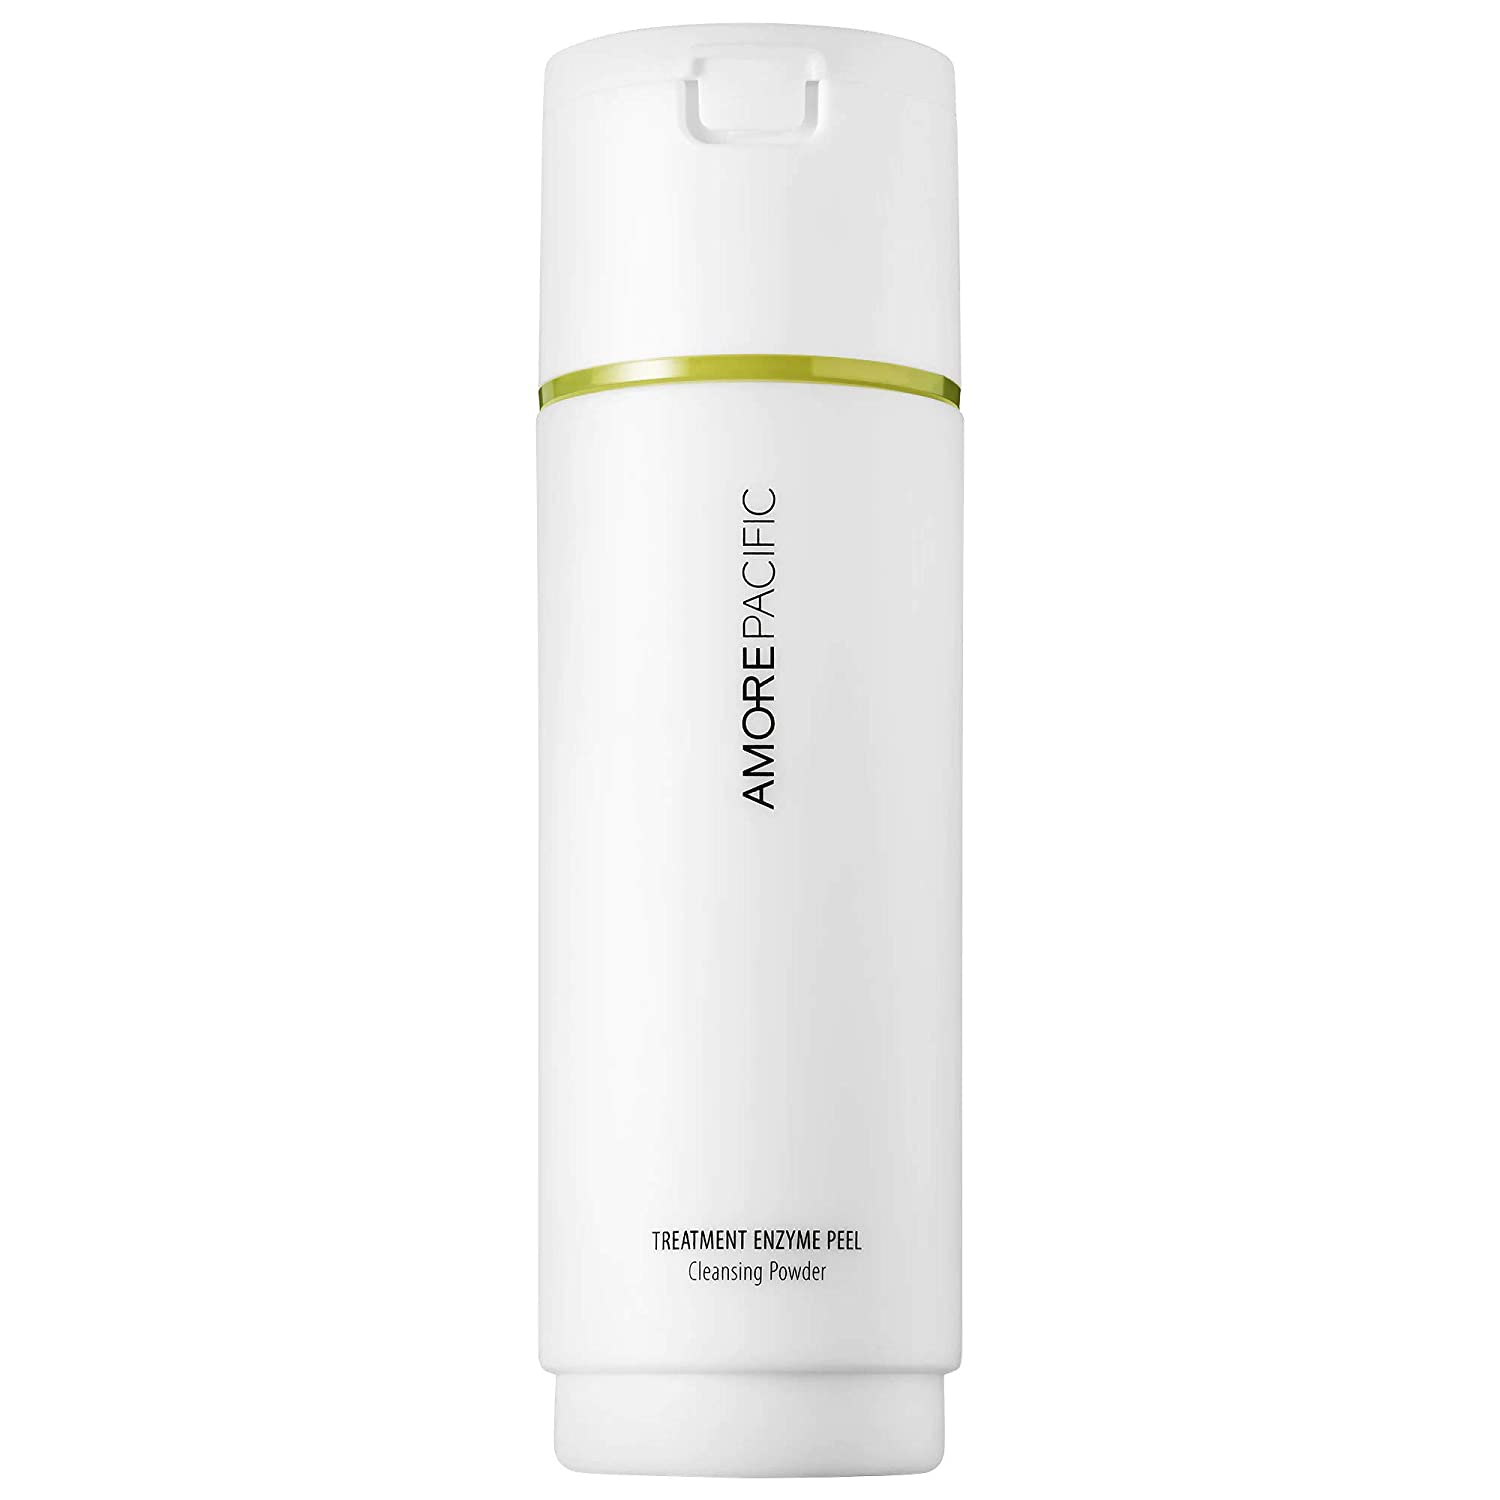 AMOREPACIFIC Treatment Enzyme Peel Cleansing Powder Exfoliating Facial Face Cleanser